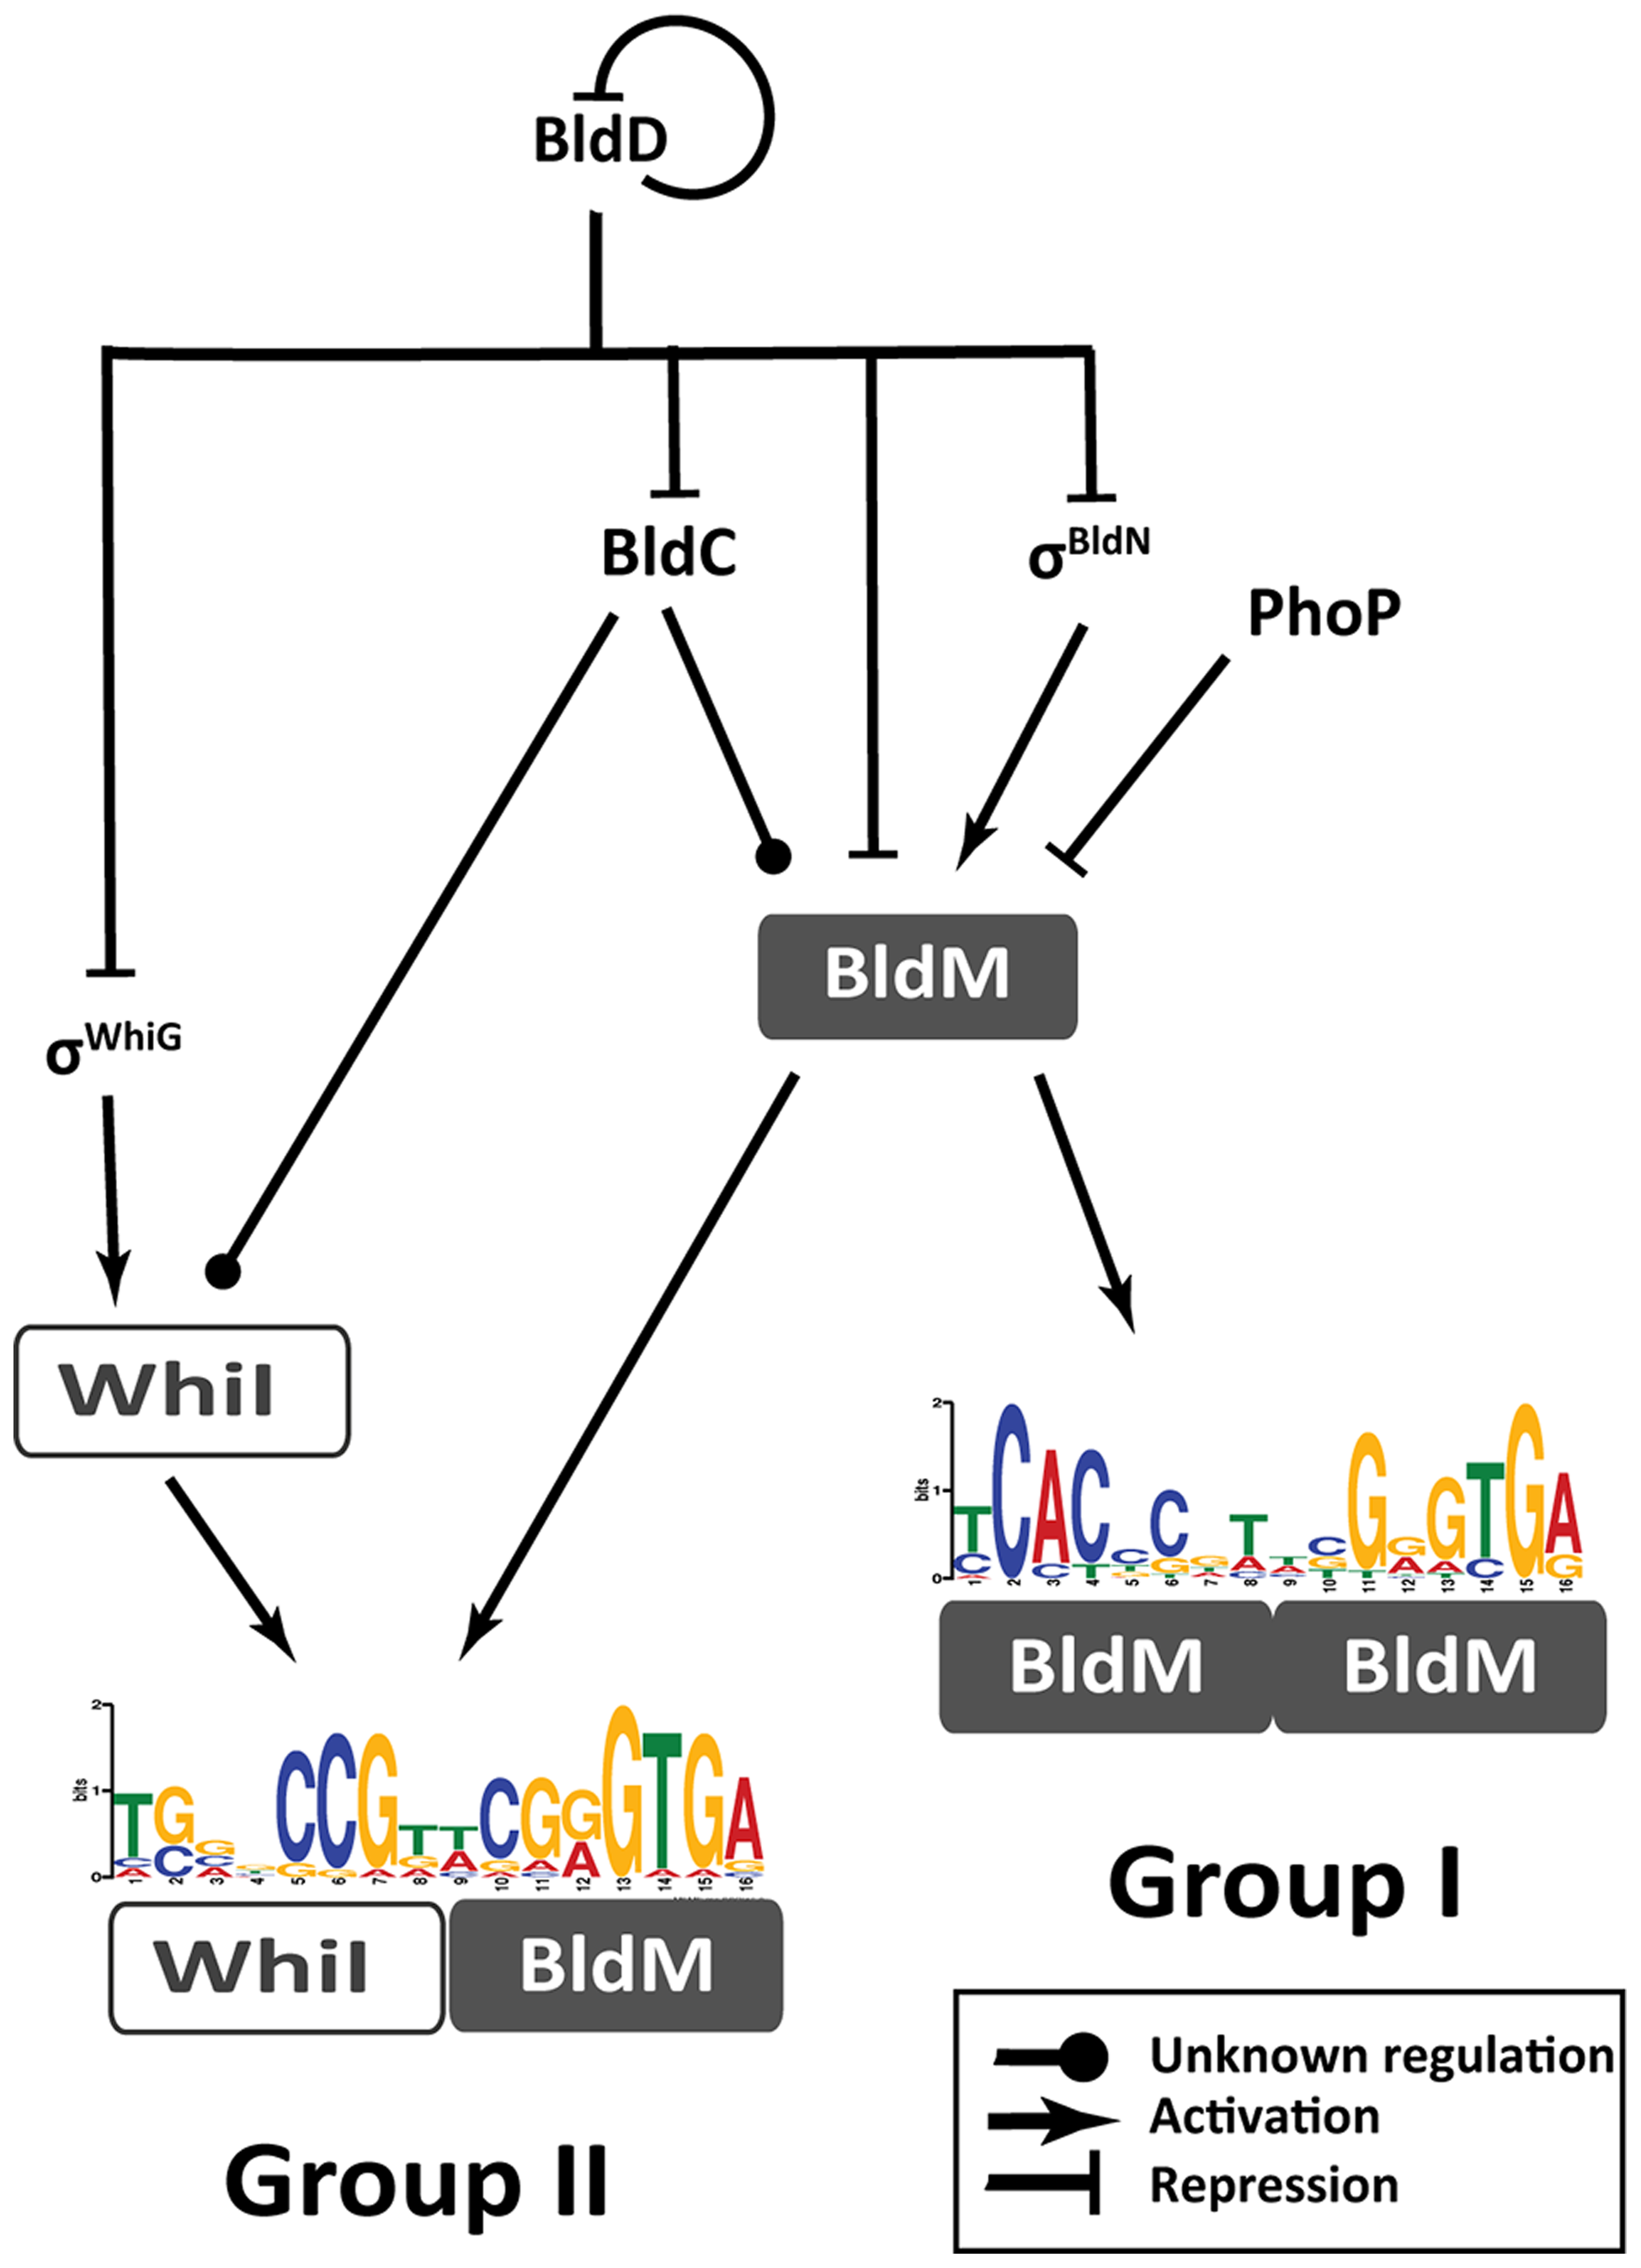 Schematic representation summarizing the regulatory network involved in controlling BldM and WhiI expression and the activation of Group-I and Group-II genes.